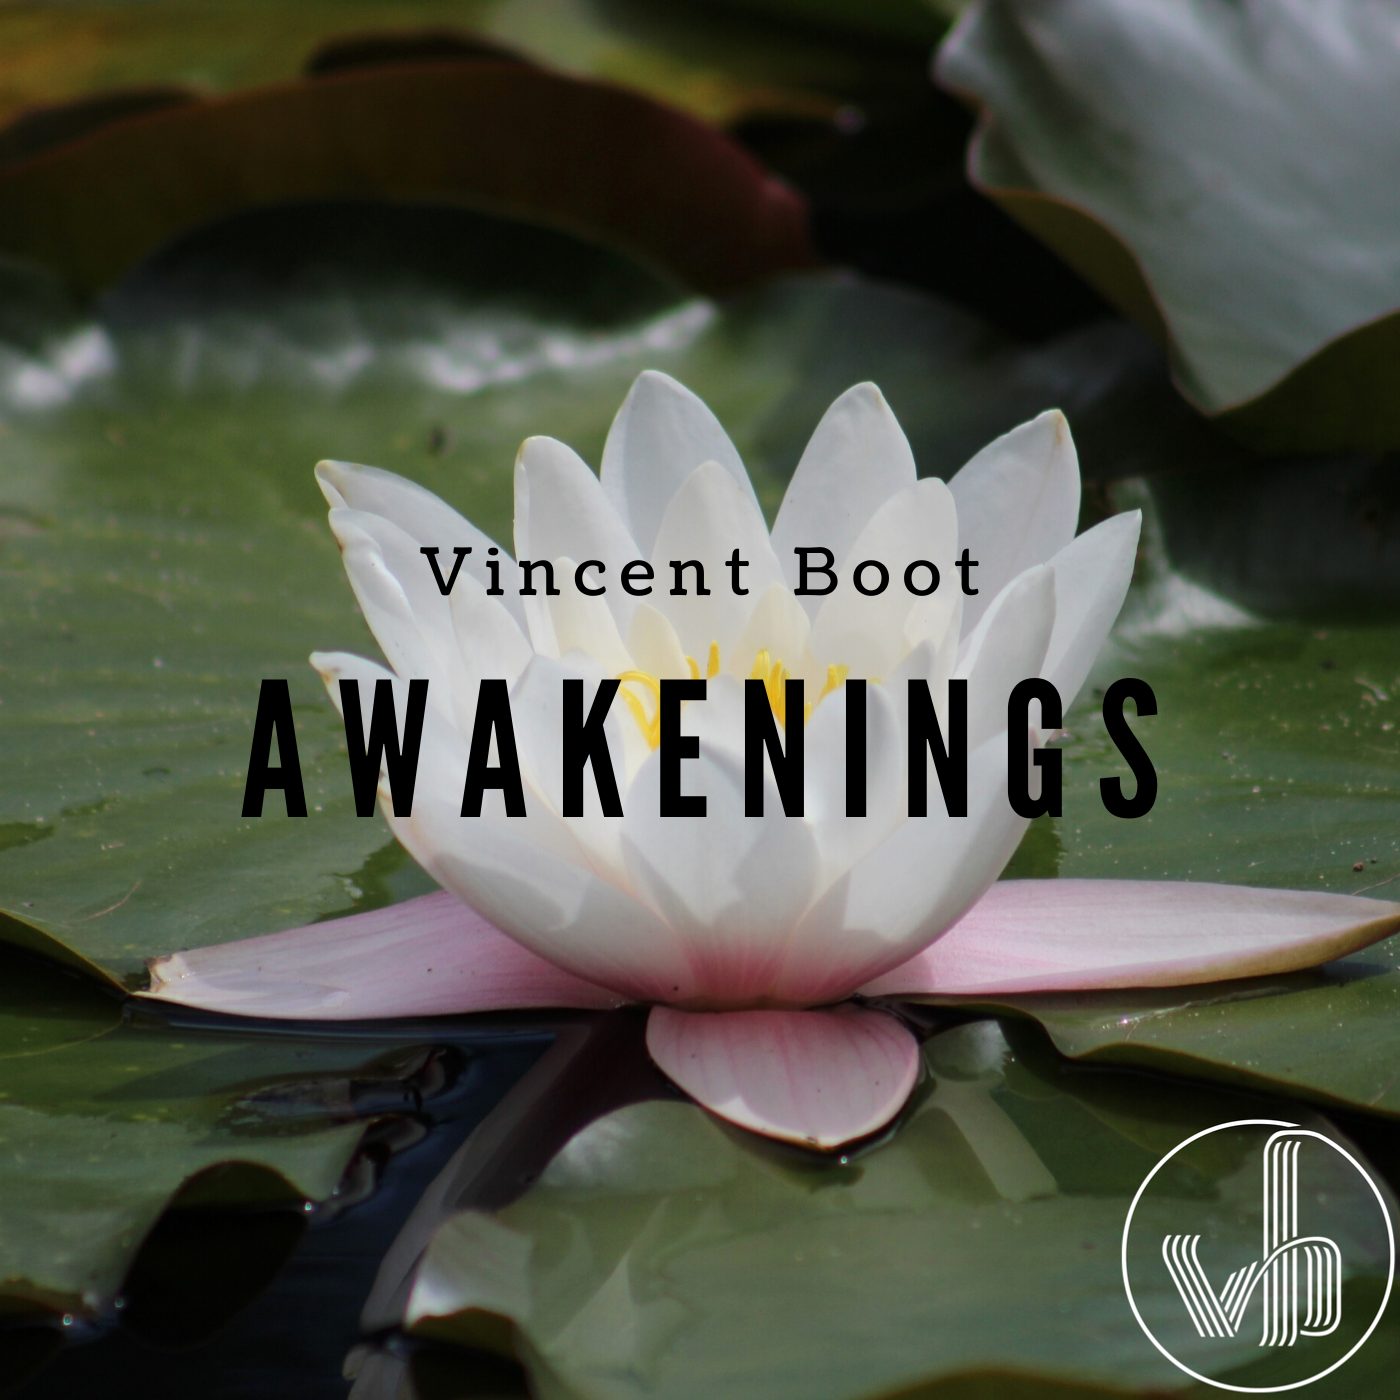 Vincent Boot - Awakenings